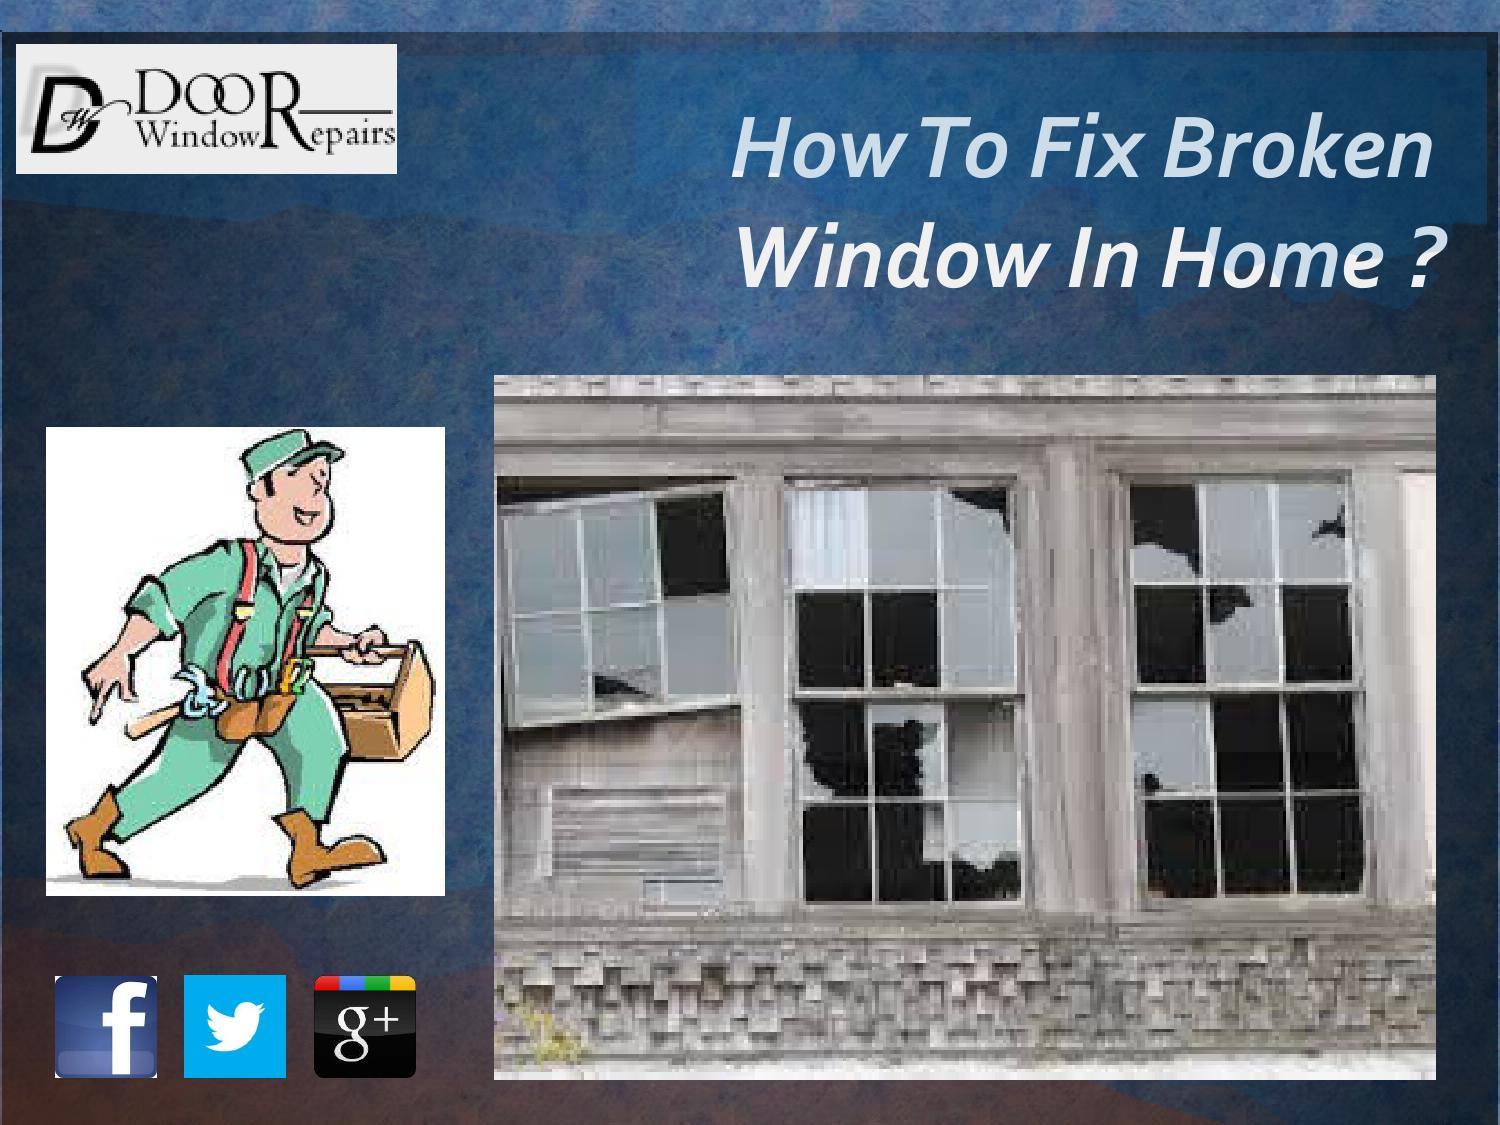 How To Fix A Broken Window In A House By Doorwindowrepair